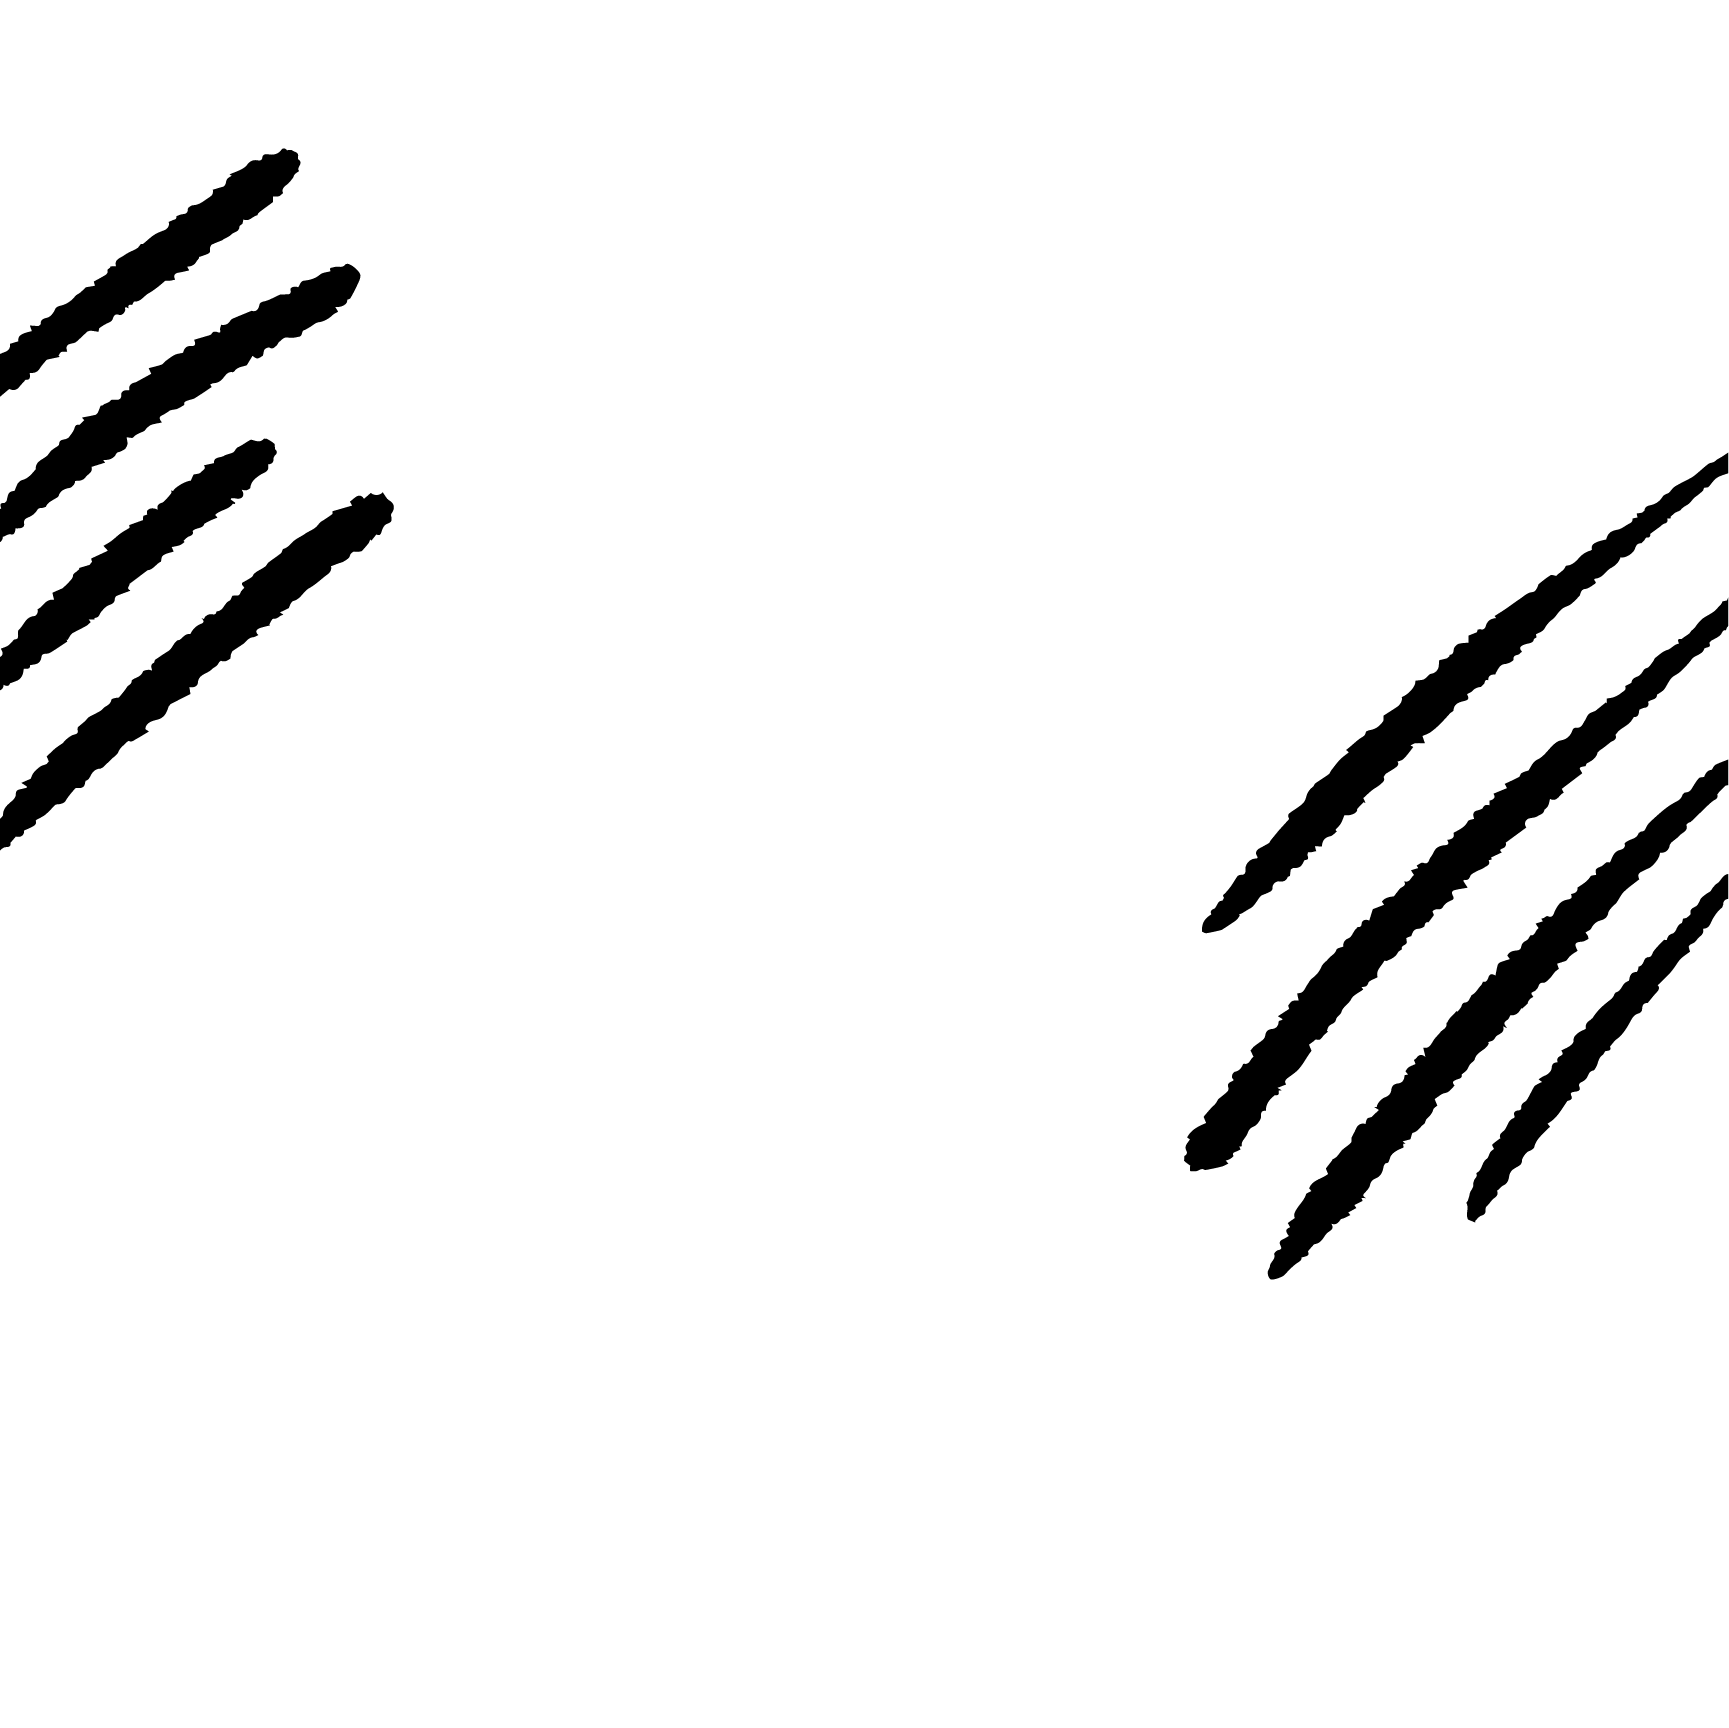 Lines - White@4x.png